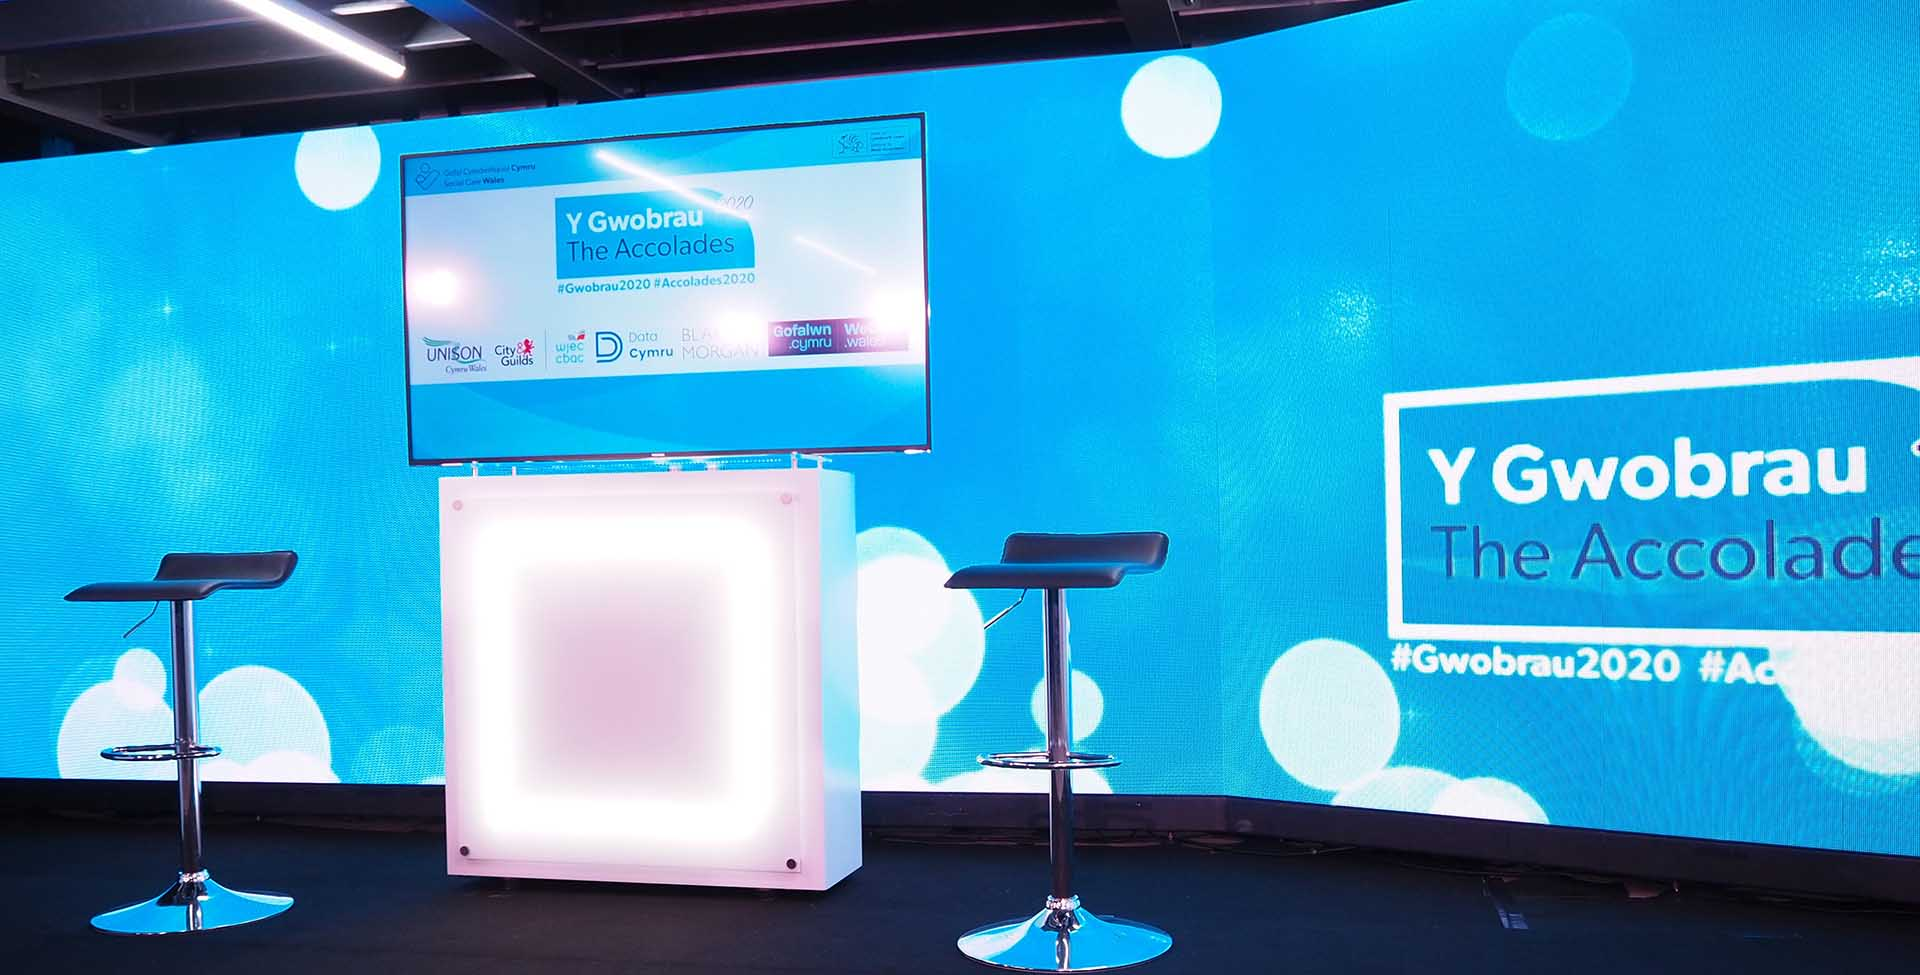 online live event studio featuring 6 meter LED video wall